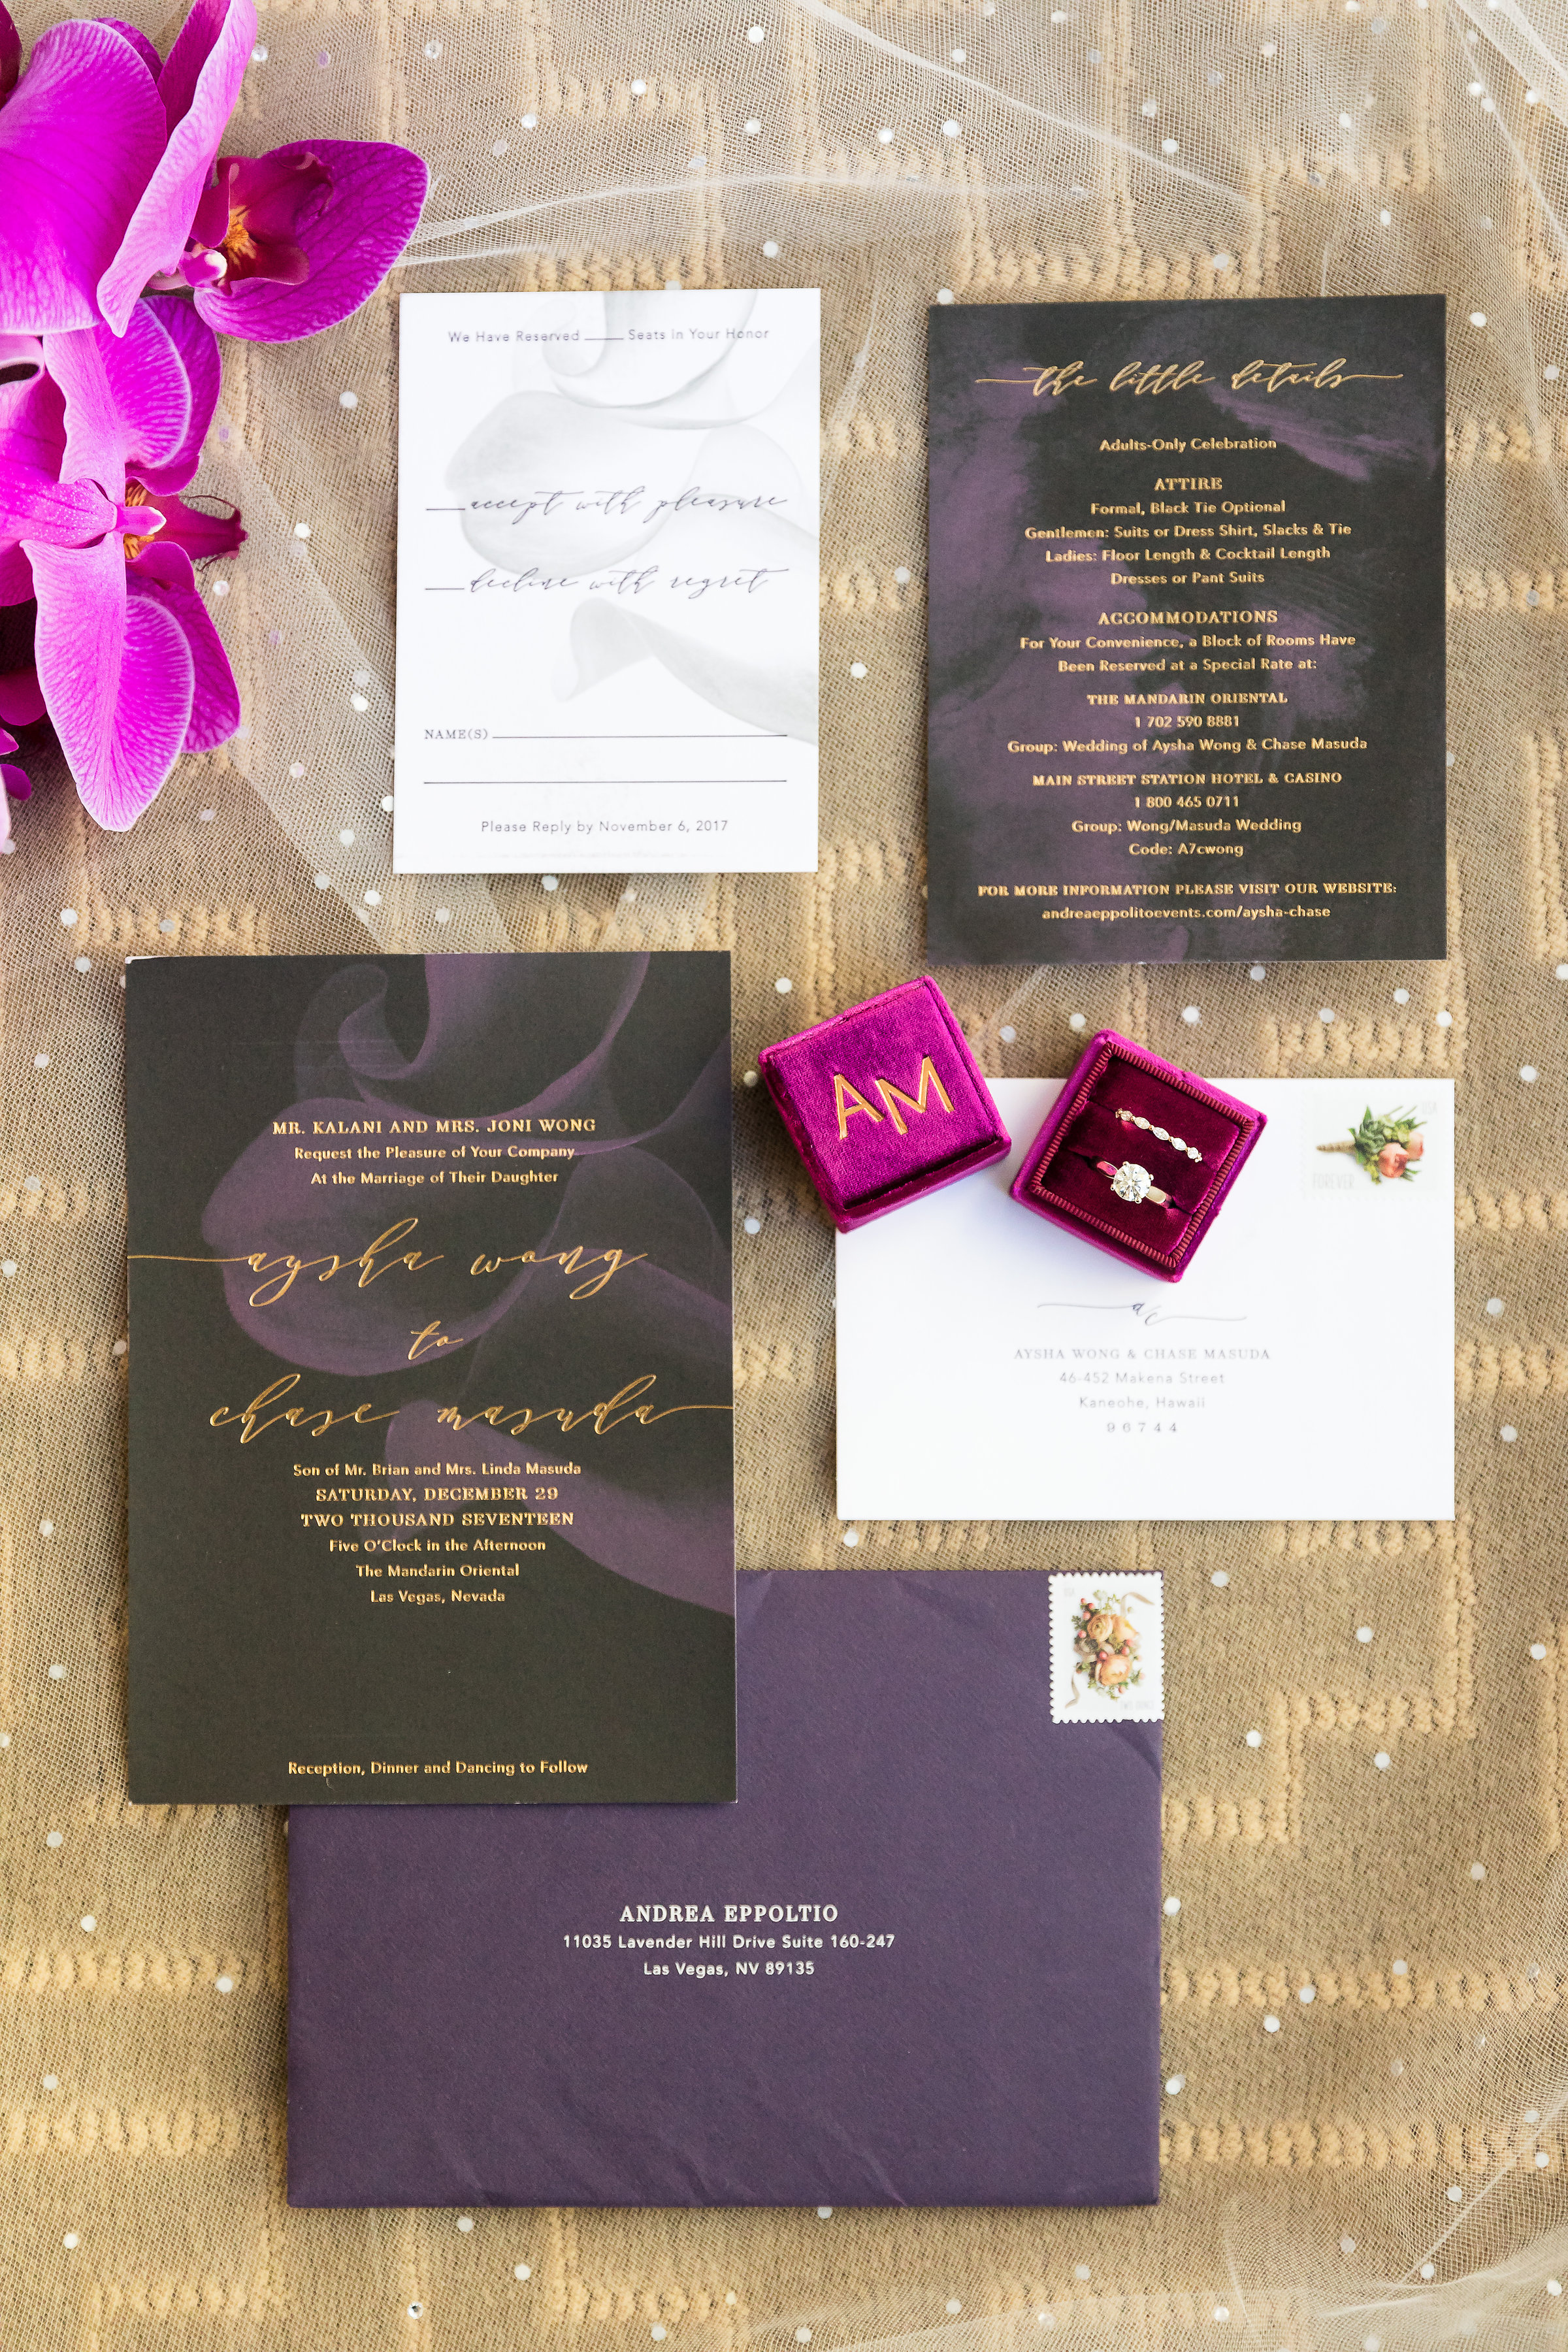 Black and purple invitation suite by Bliss and Bone.Wedding Planner: Andrea Eppolito Events    Photography  Brian Leahy     Invitations by Bliss and Bone